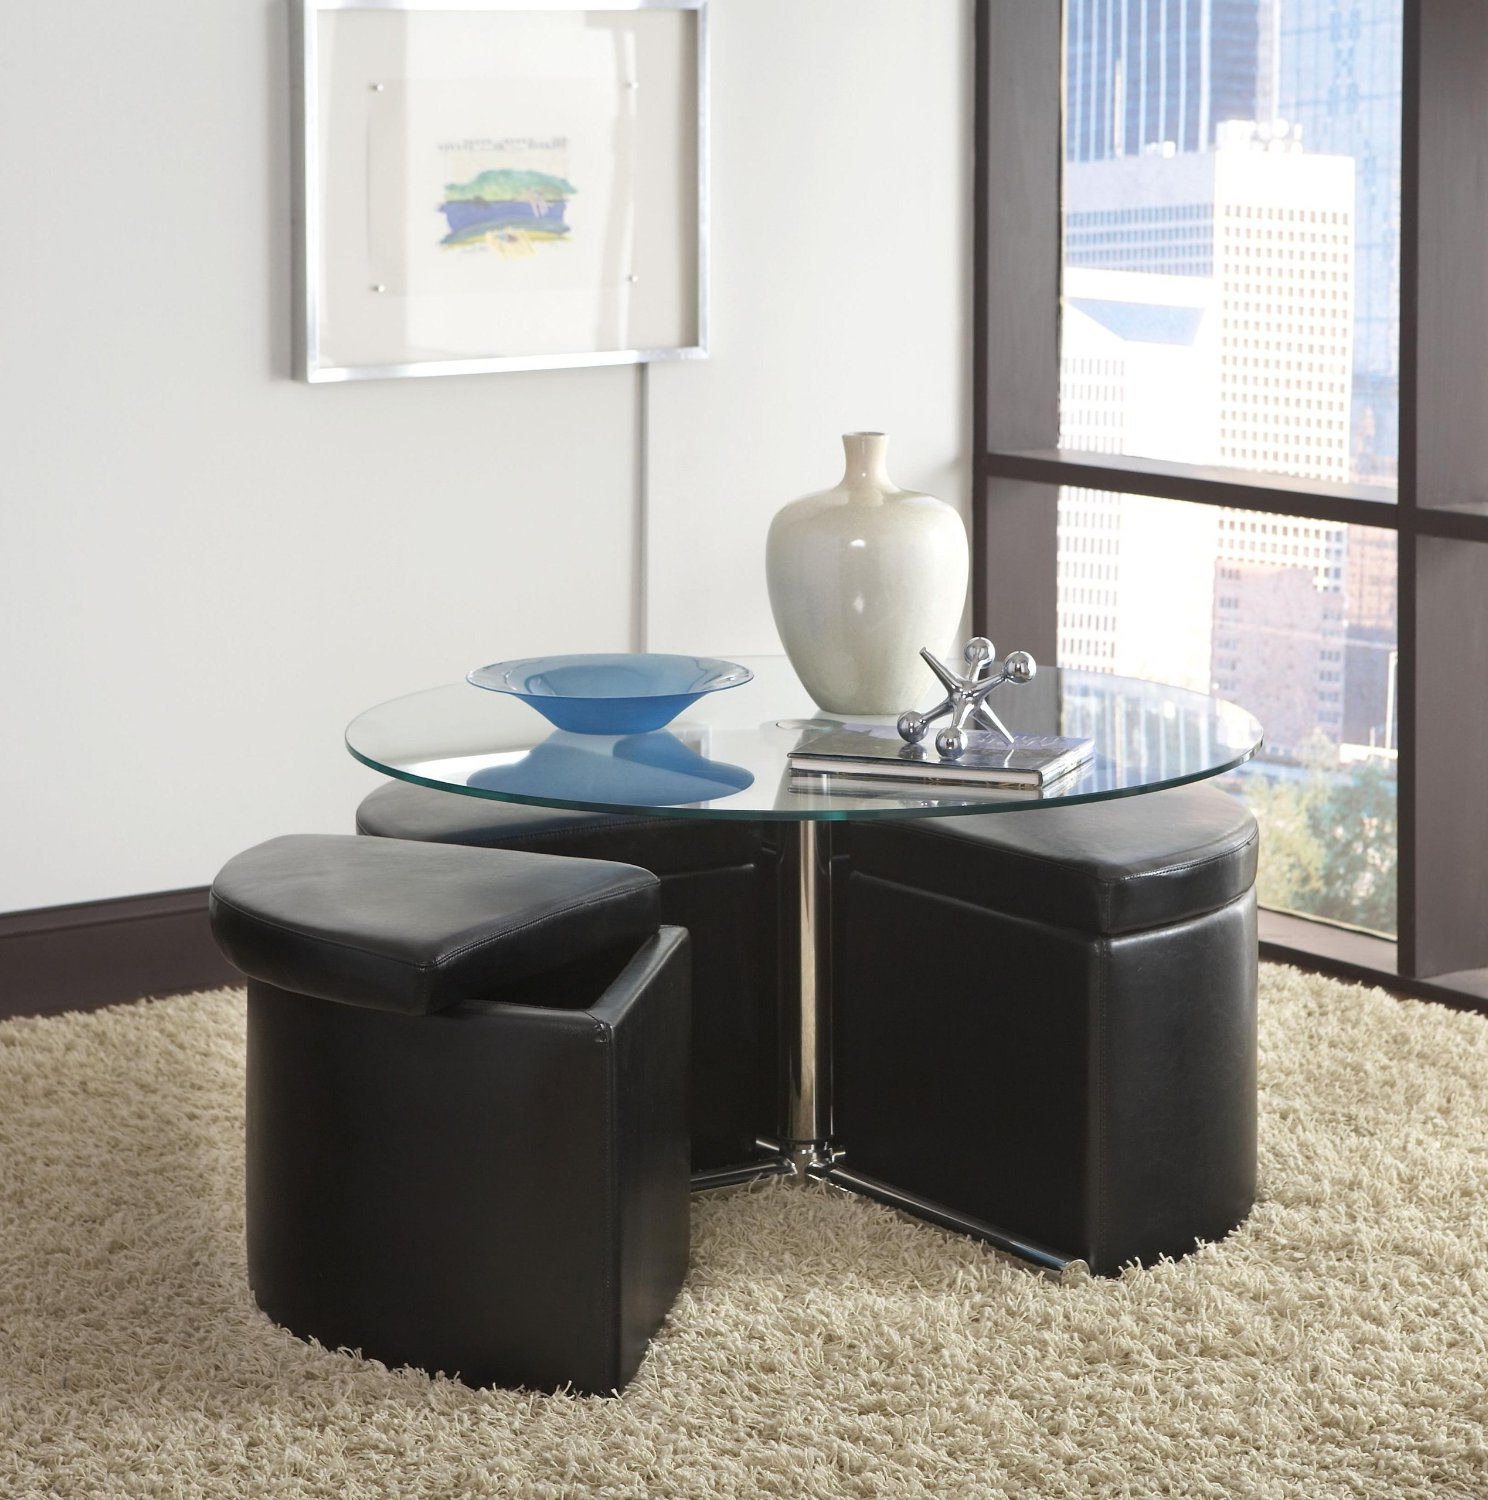 Round Coffee Table With Seats Ottoman Pull Out Raysa House - Round coffee table with pull out seats